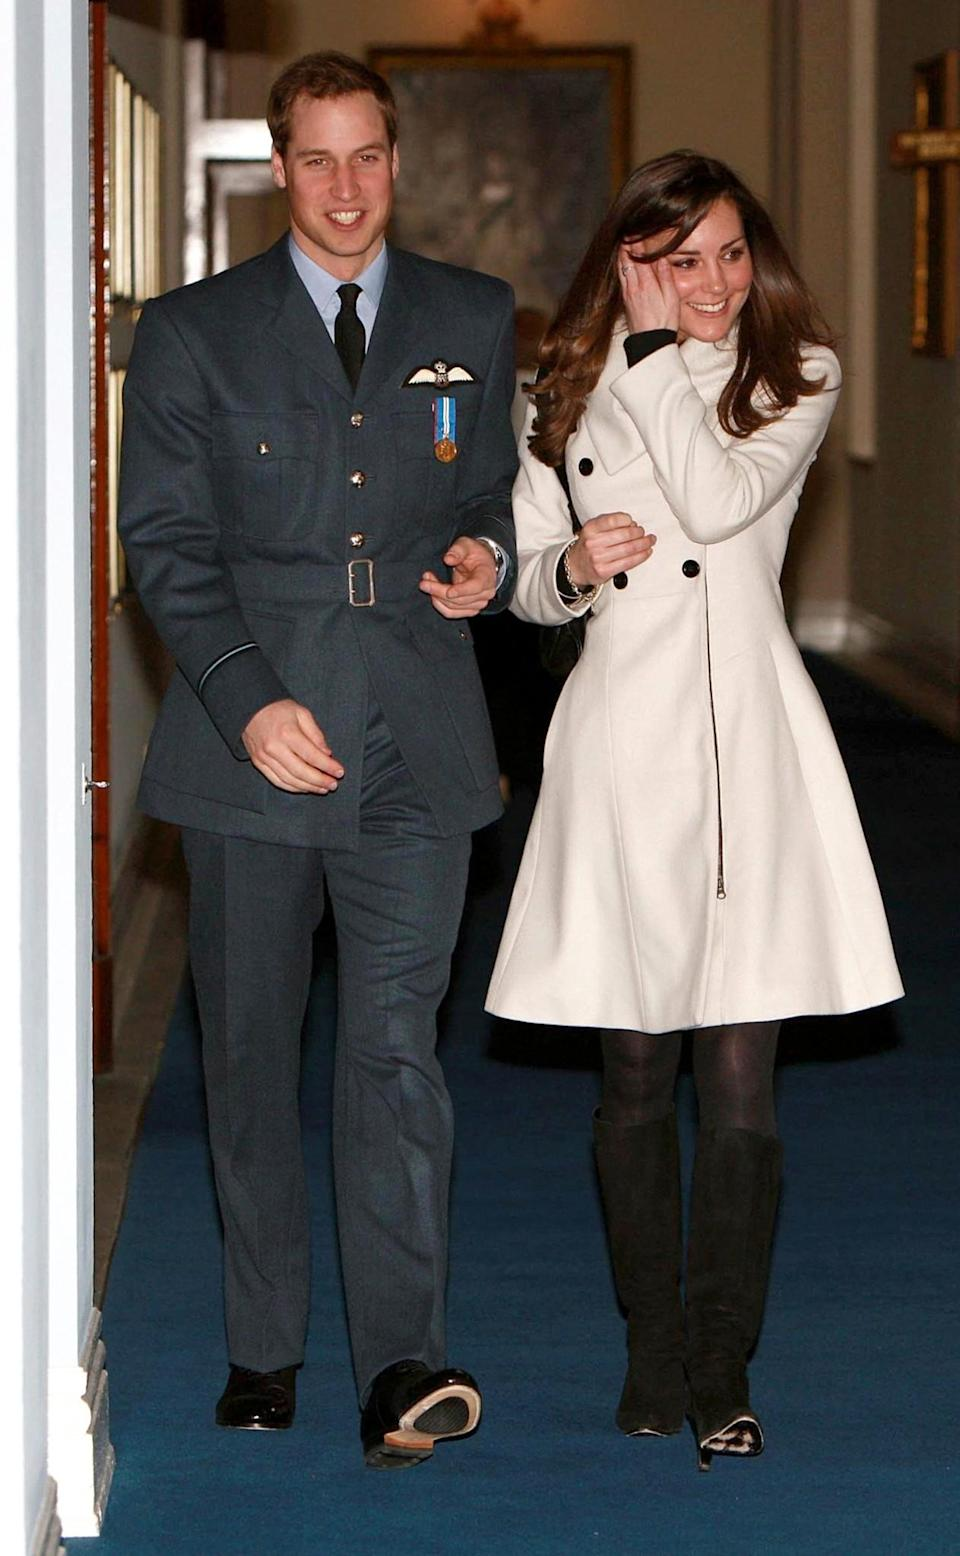 <p>Kate and Wills are all smiles as the Prince becomes a qualified pilot for the RAF.<br><i>[Photo: PA]</i> </p>